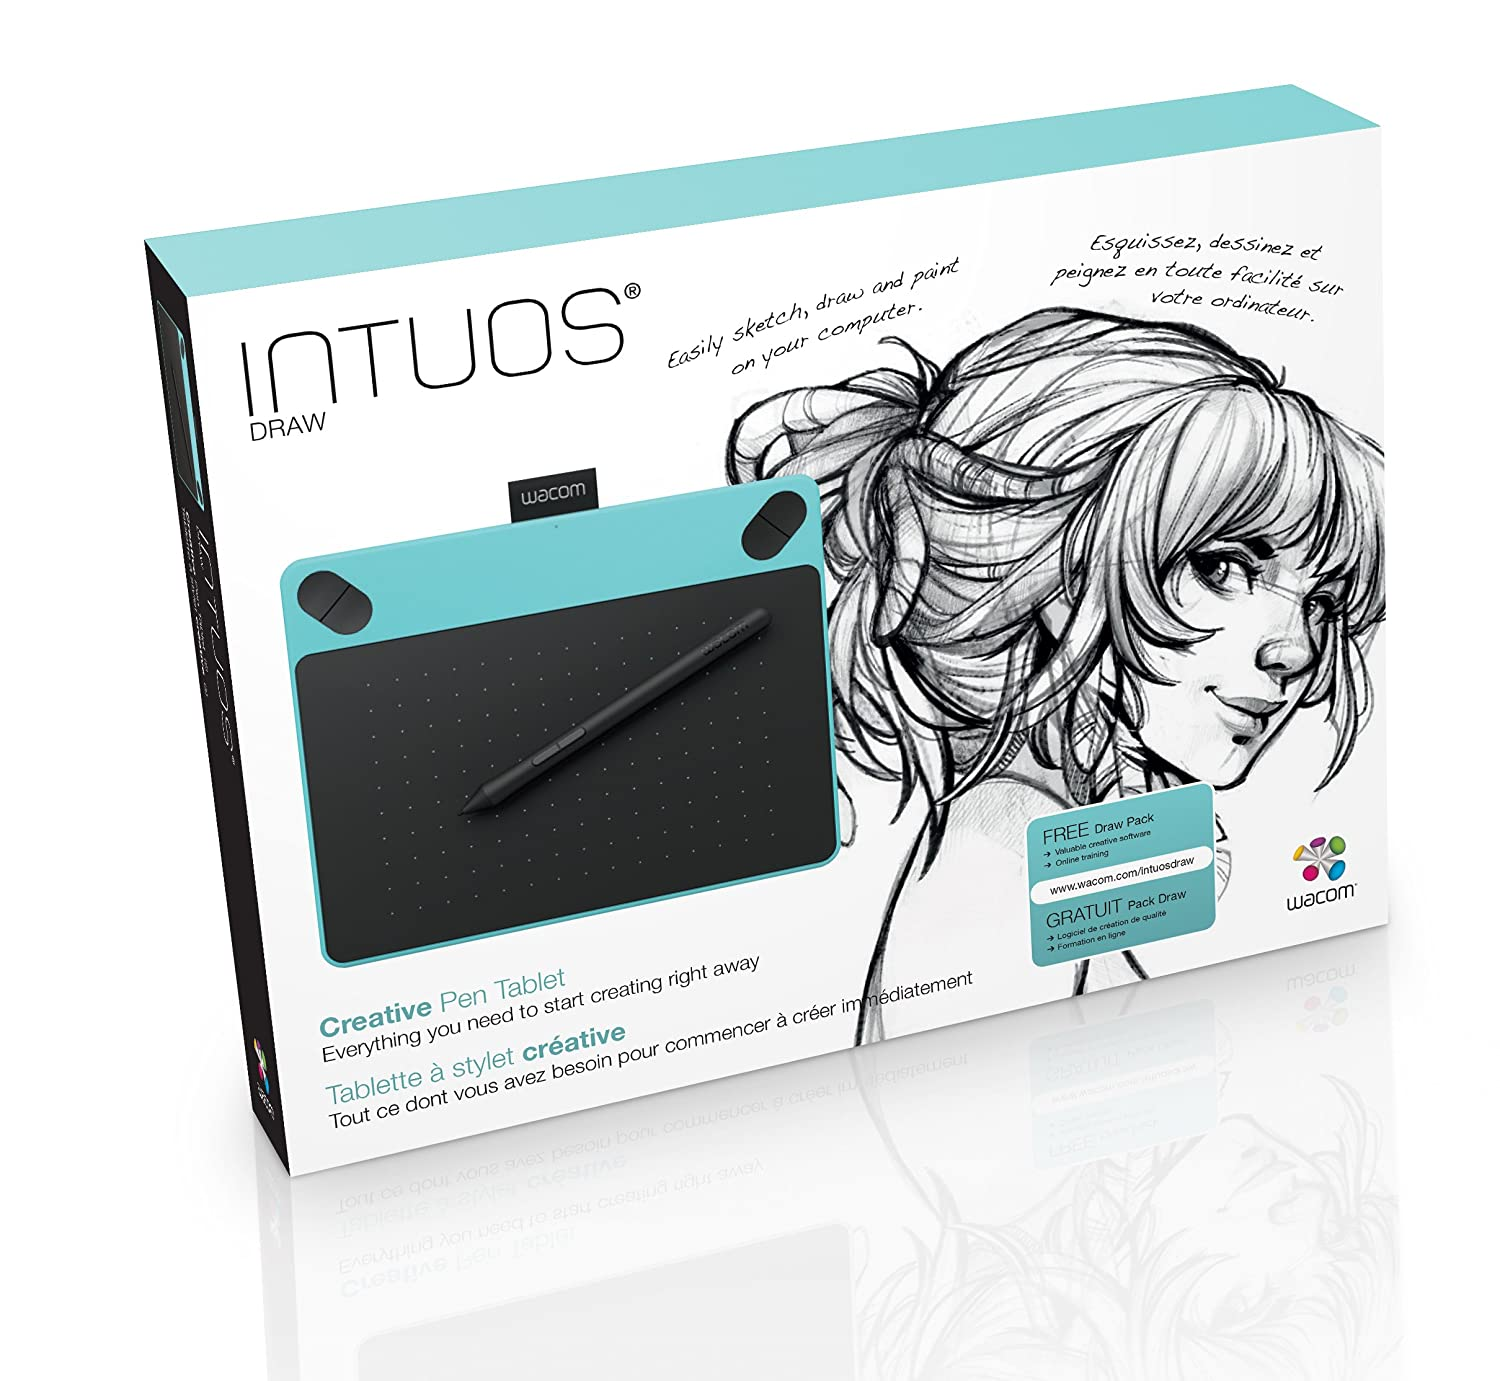 Buy Wacom Intuos Draw Creative Pen Ctl 490 Bo Tablet 4100 K0 Cx Mint Blue Online At Low Prices In India Reviews Ratings